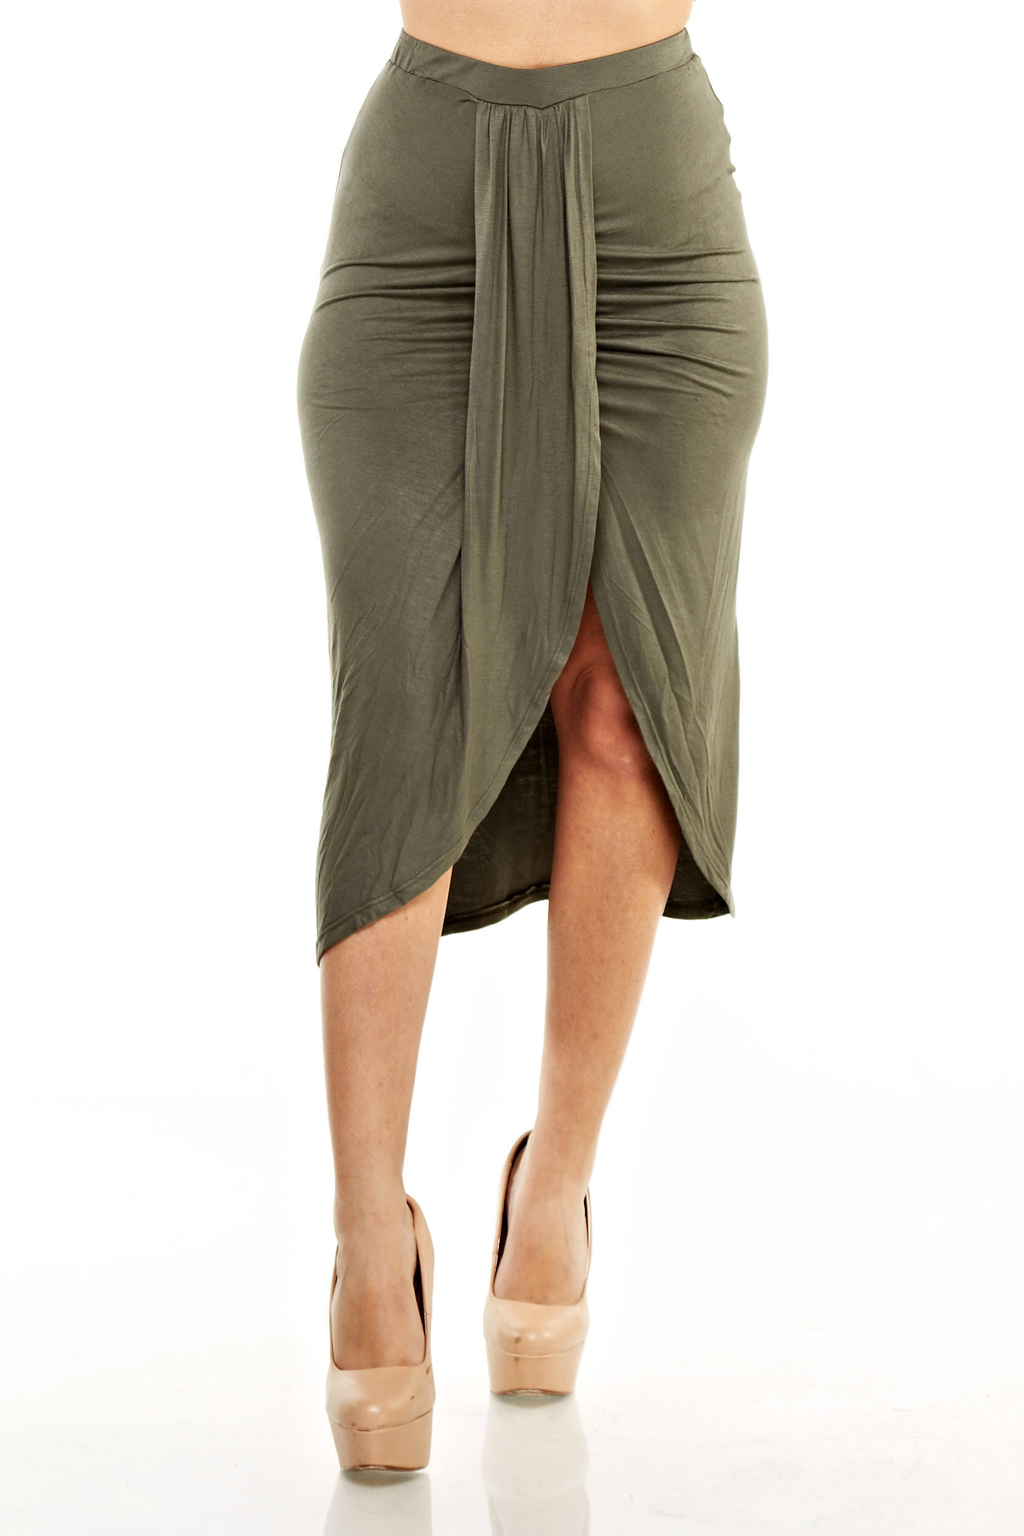 Draped Hi-Lo Summer Skirt Plus Size